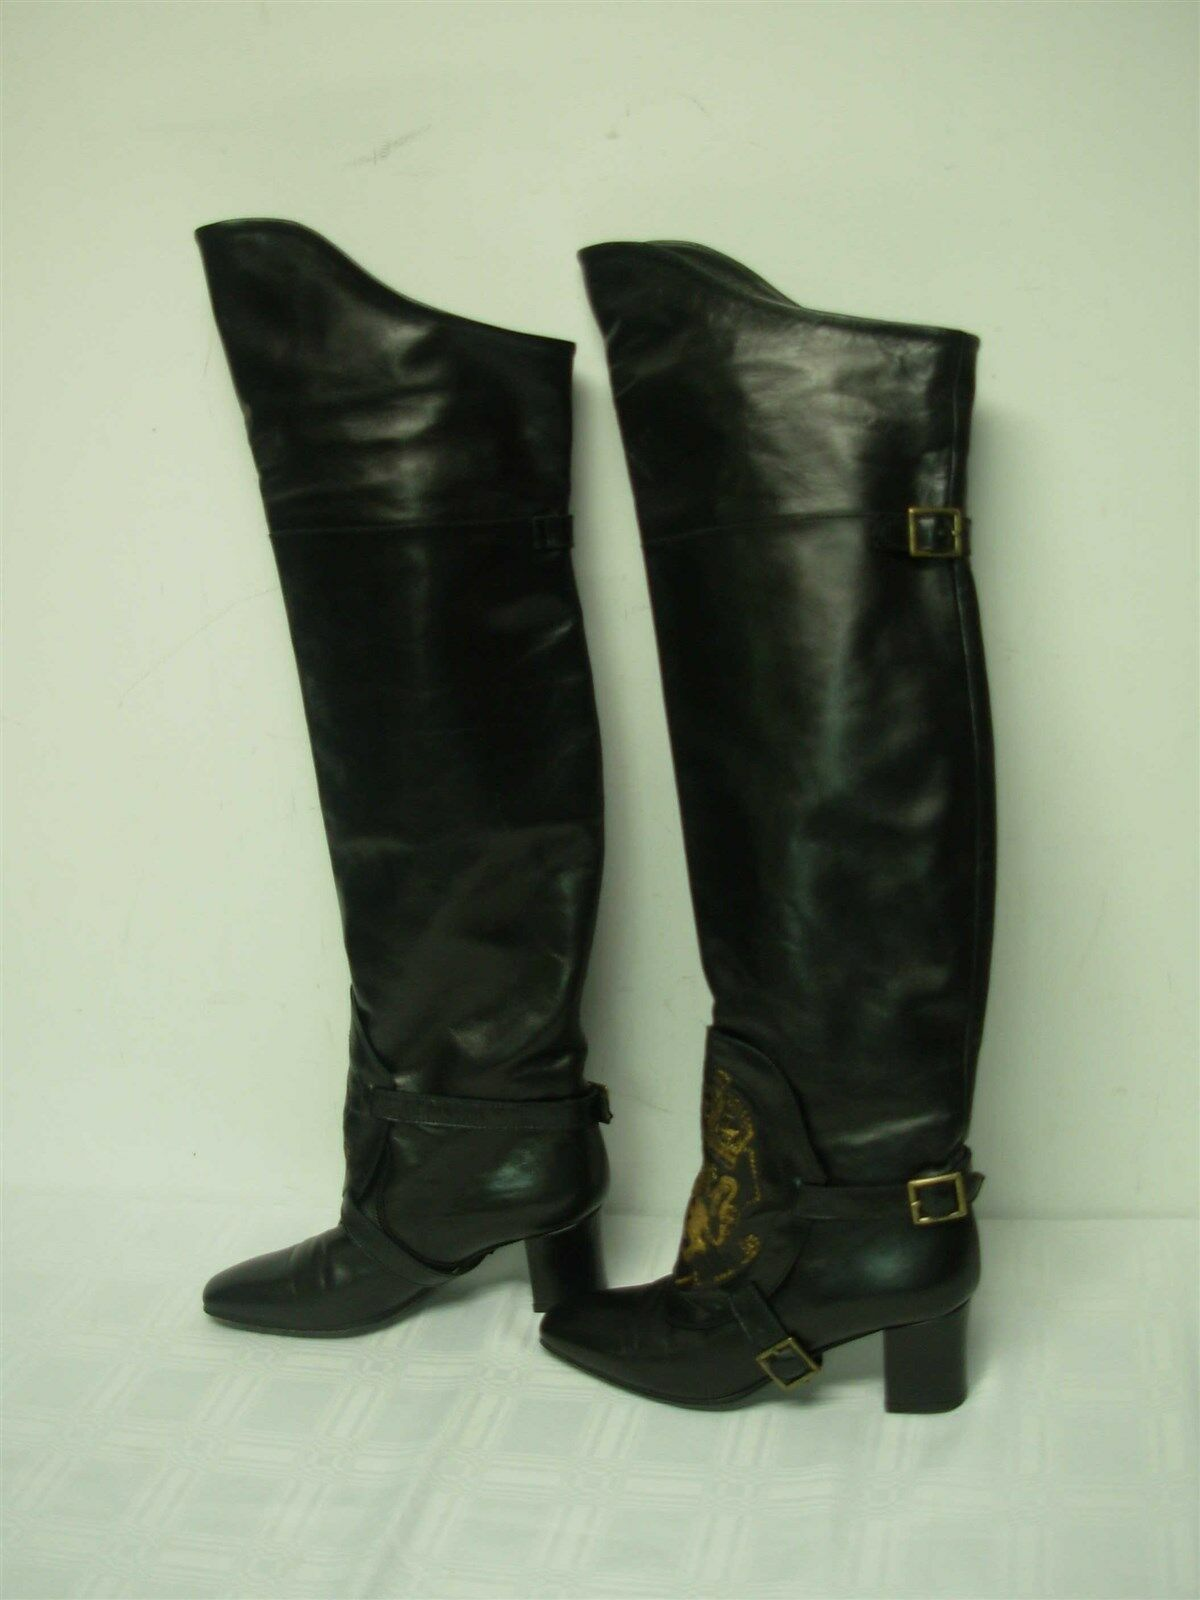 contatore genuino RALPH RALPH RALPH LAUREN ITALY nero LEATHER donna HIGH stivali GRIFFIN BUCKLE LOGO SZ 6 1 2  edizione limitata